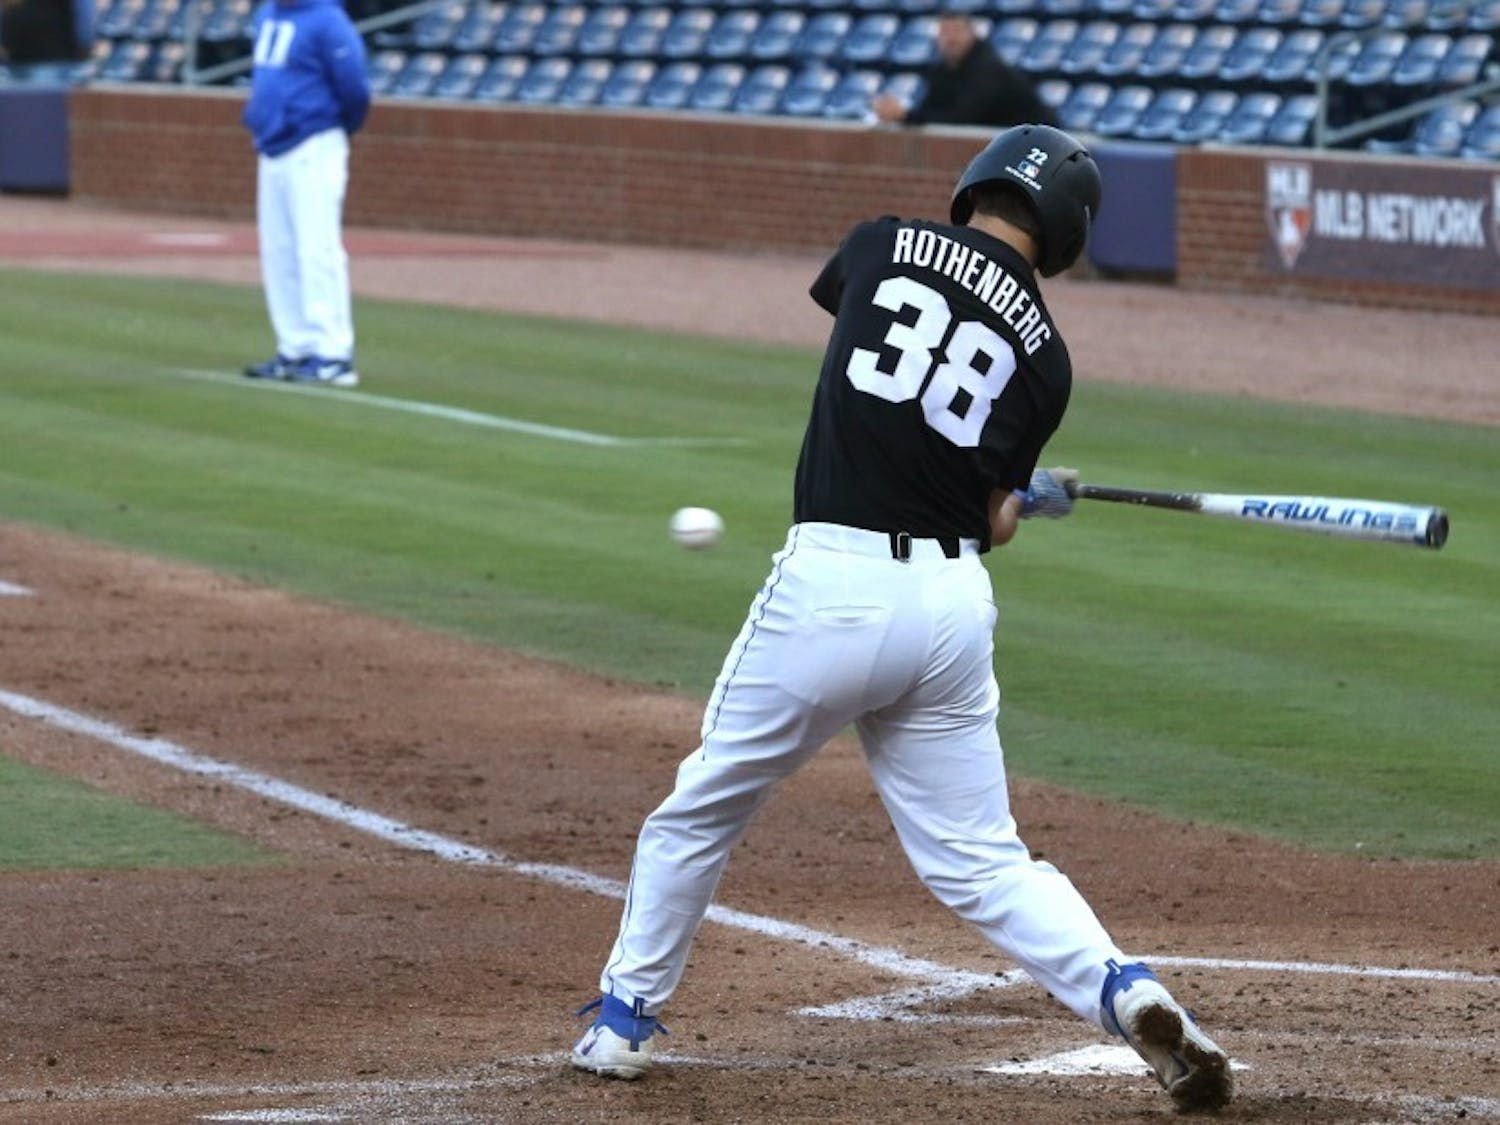 Michael Rothenberg drove in three runs Tuesday.